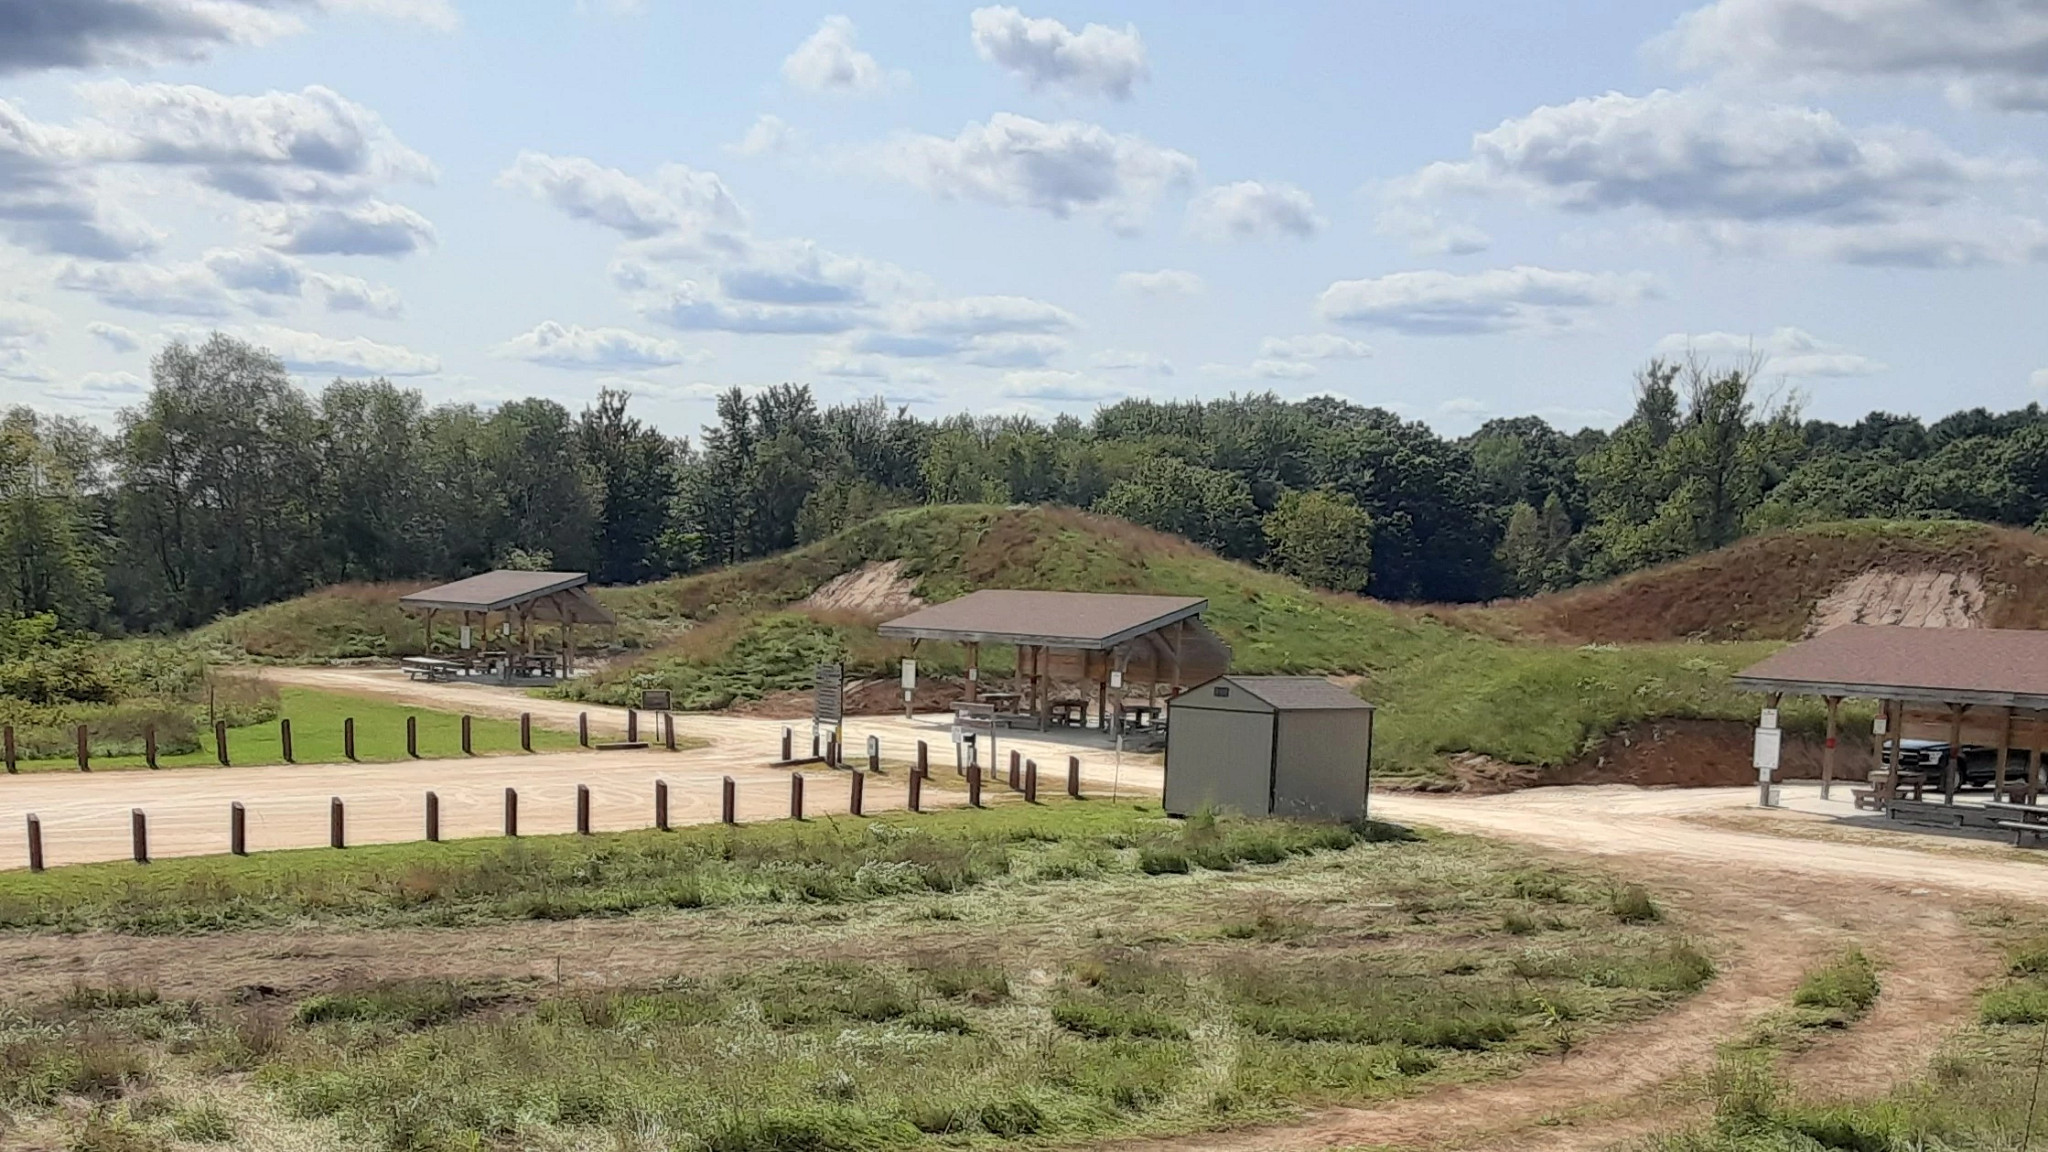 Waushara County Shooting Range reopens to the public with new facility improvements and accessible walkways